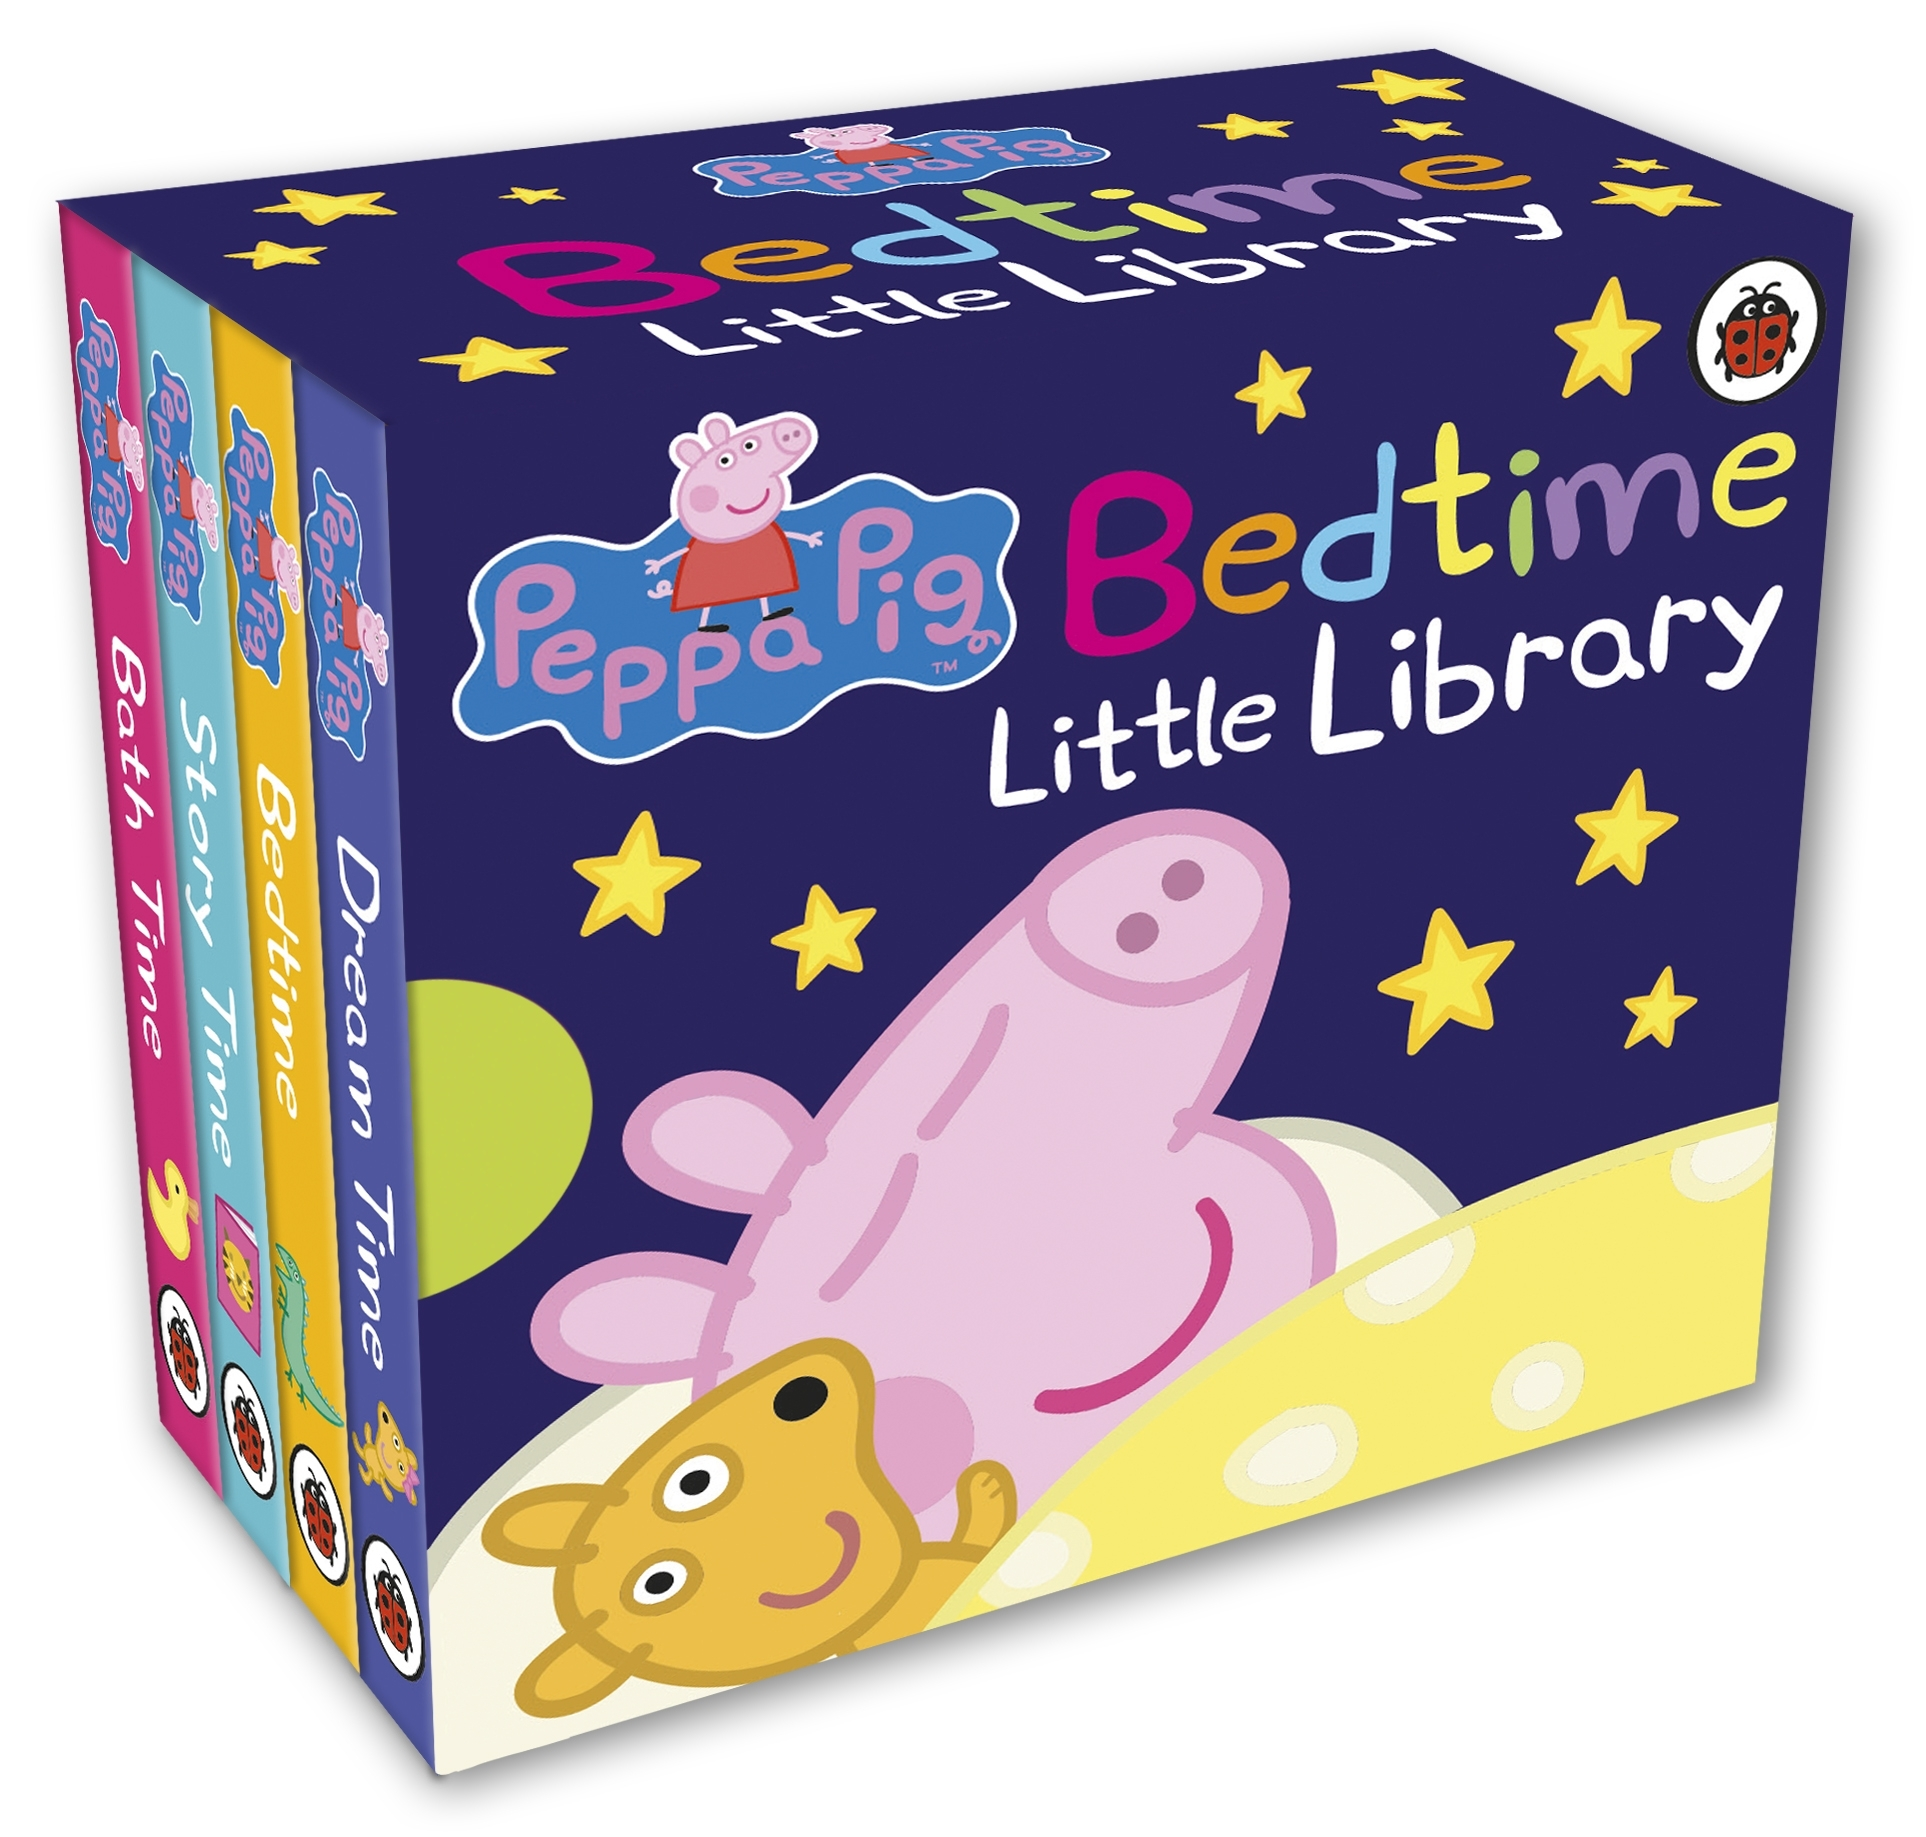 Picture of Peppa Pig: Bedtime Little Library